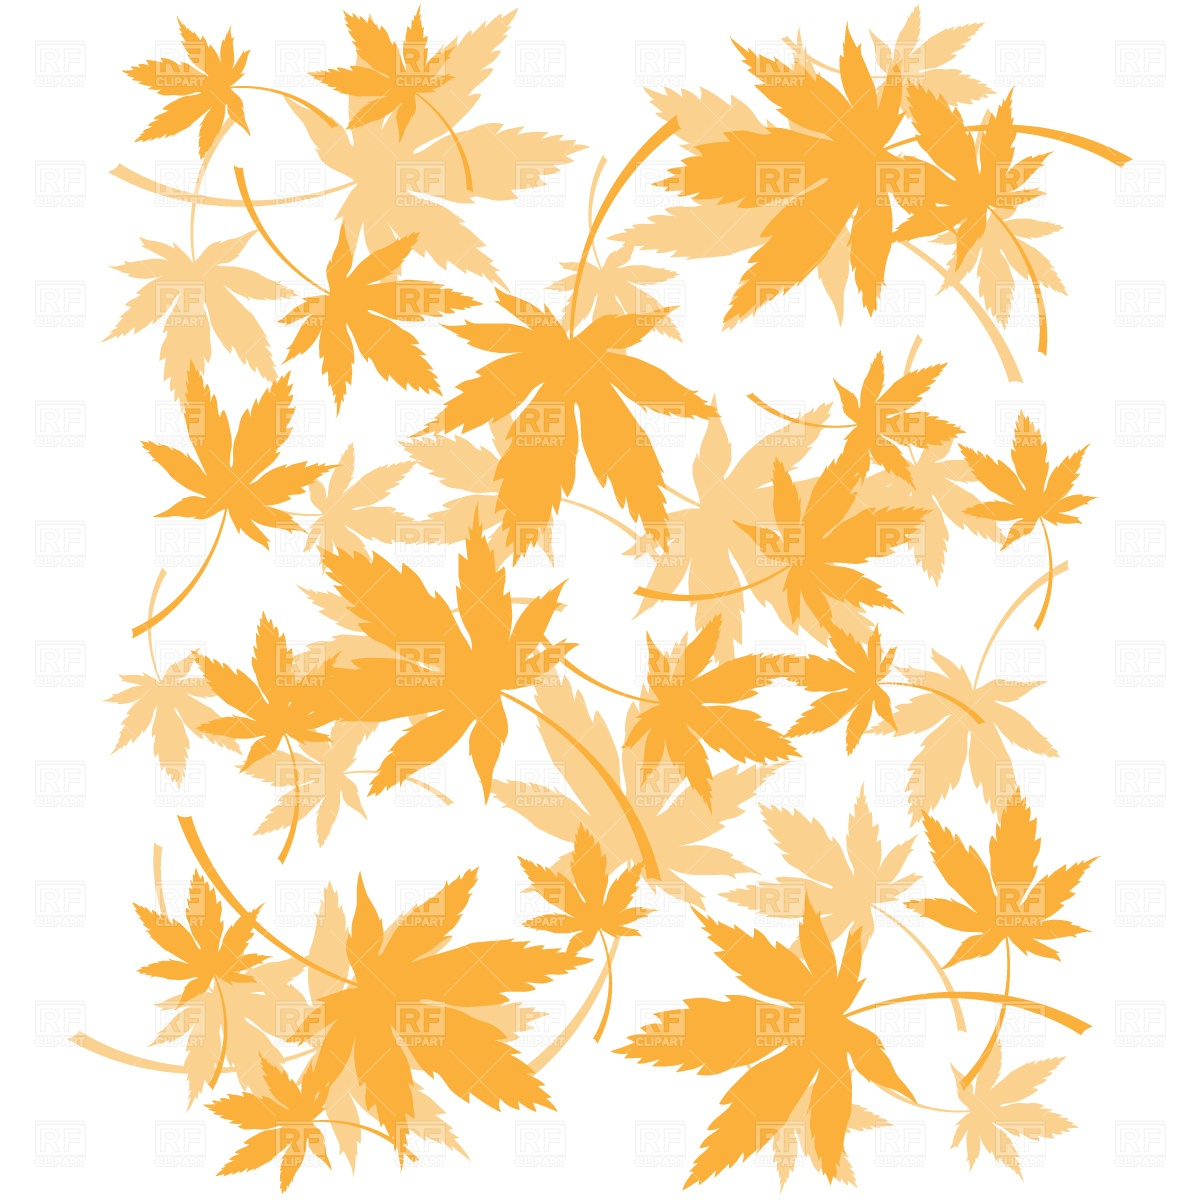 Wallpaper clipart autumn Leaf Wallpapers Leaves Backgrounds Fall